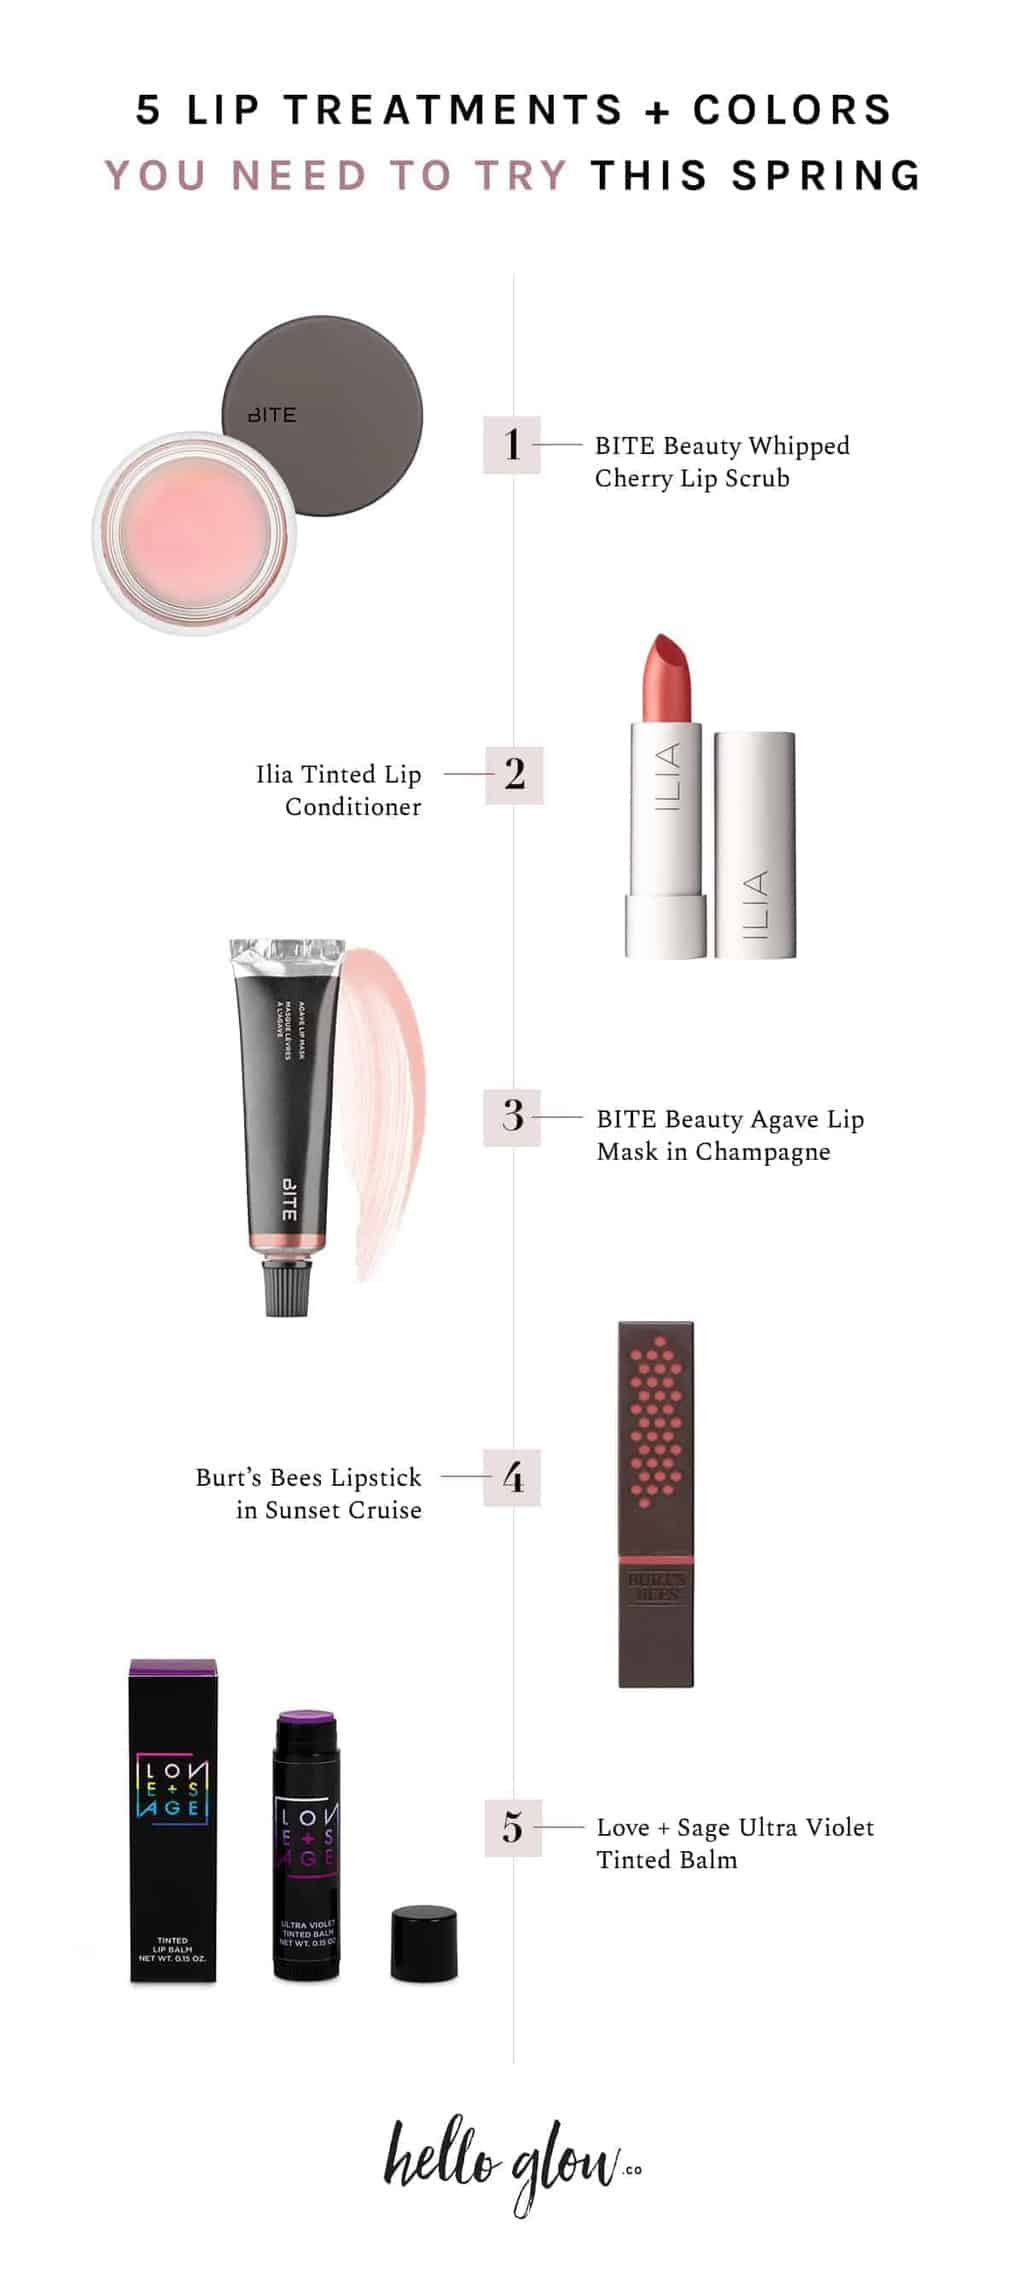 5 Lip Treatments + Colors You Need to Try This Spring